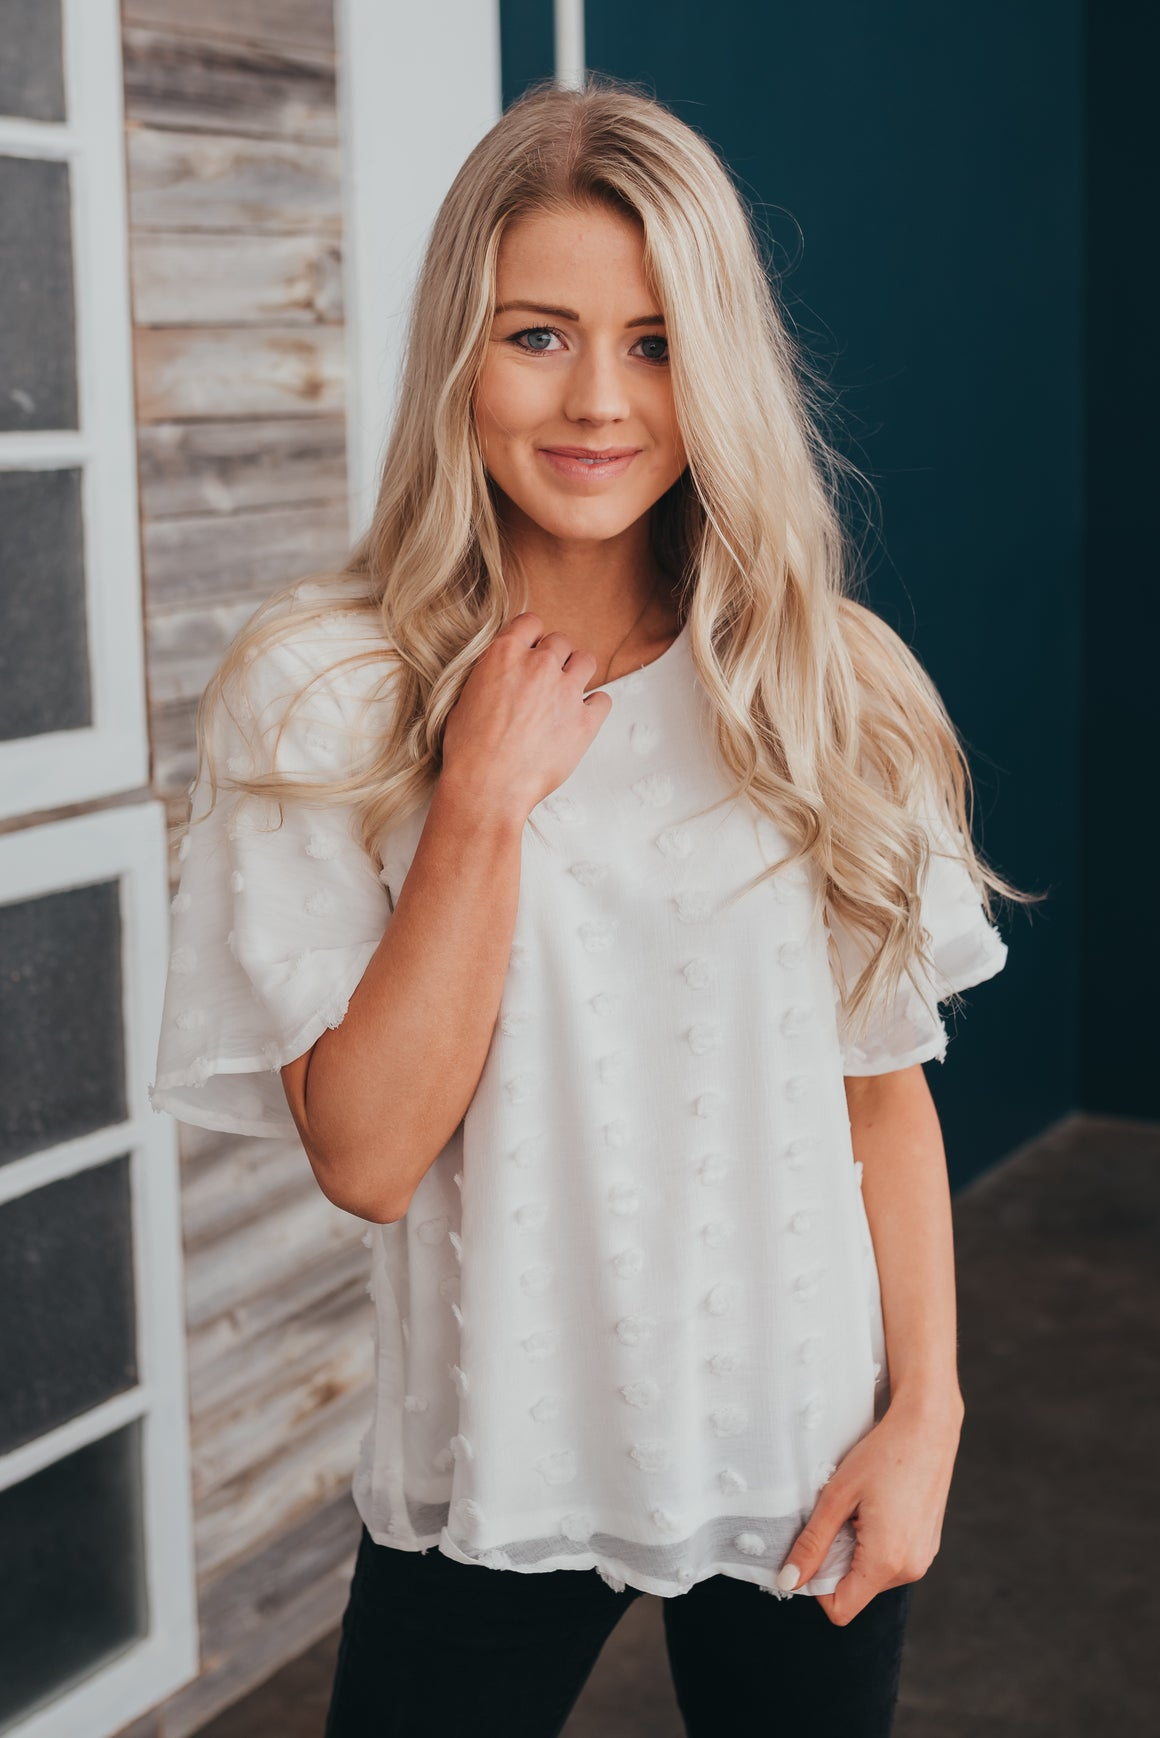 POM-POM TOP IN WHITE